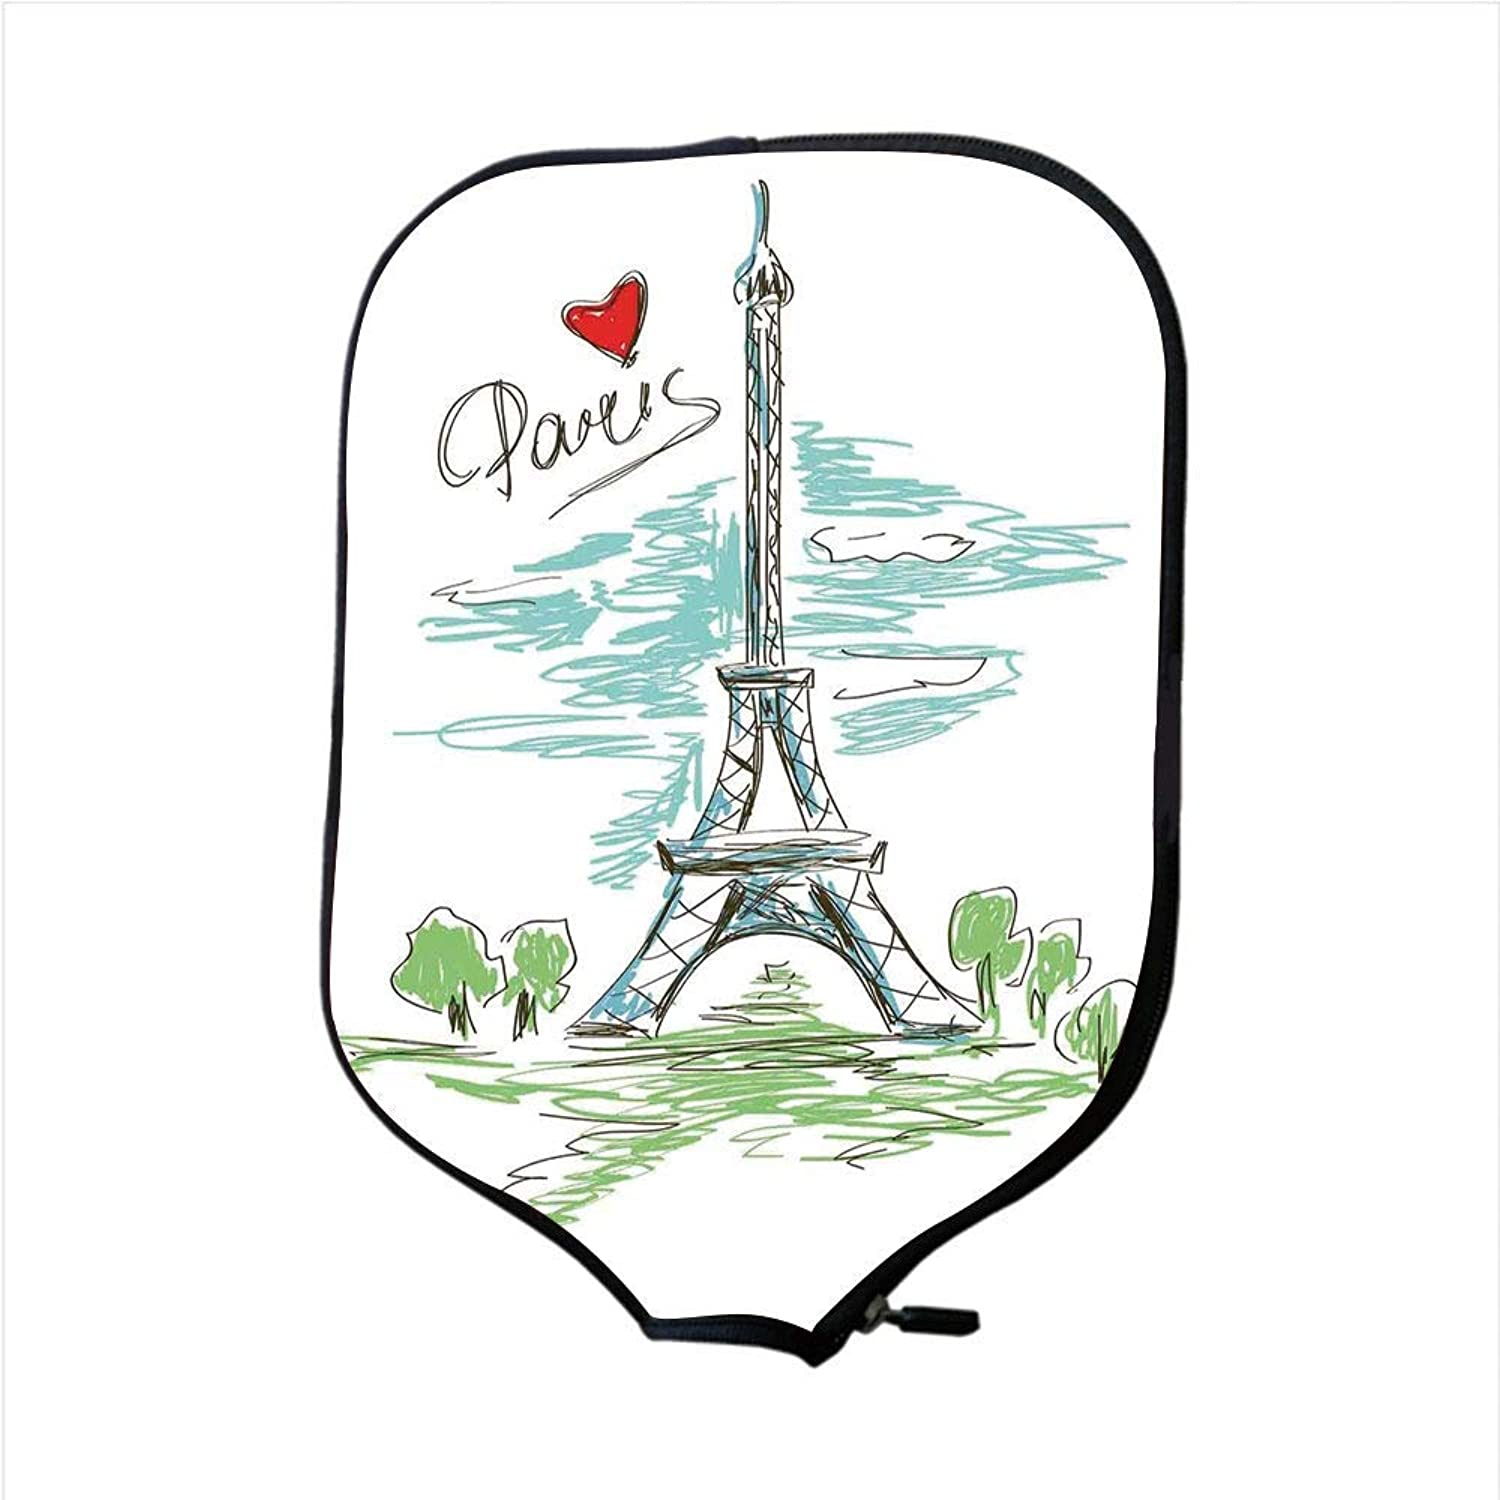 Fine Neoprene Pickleball Paddle Racket Cover Case,Paris,Touristic colorful Sketch of Eiffel Tower in Paris French Style Travel Illustration,Multicolor,Fit for Most Rackets